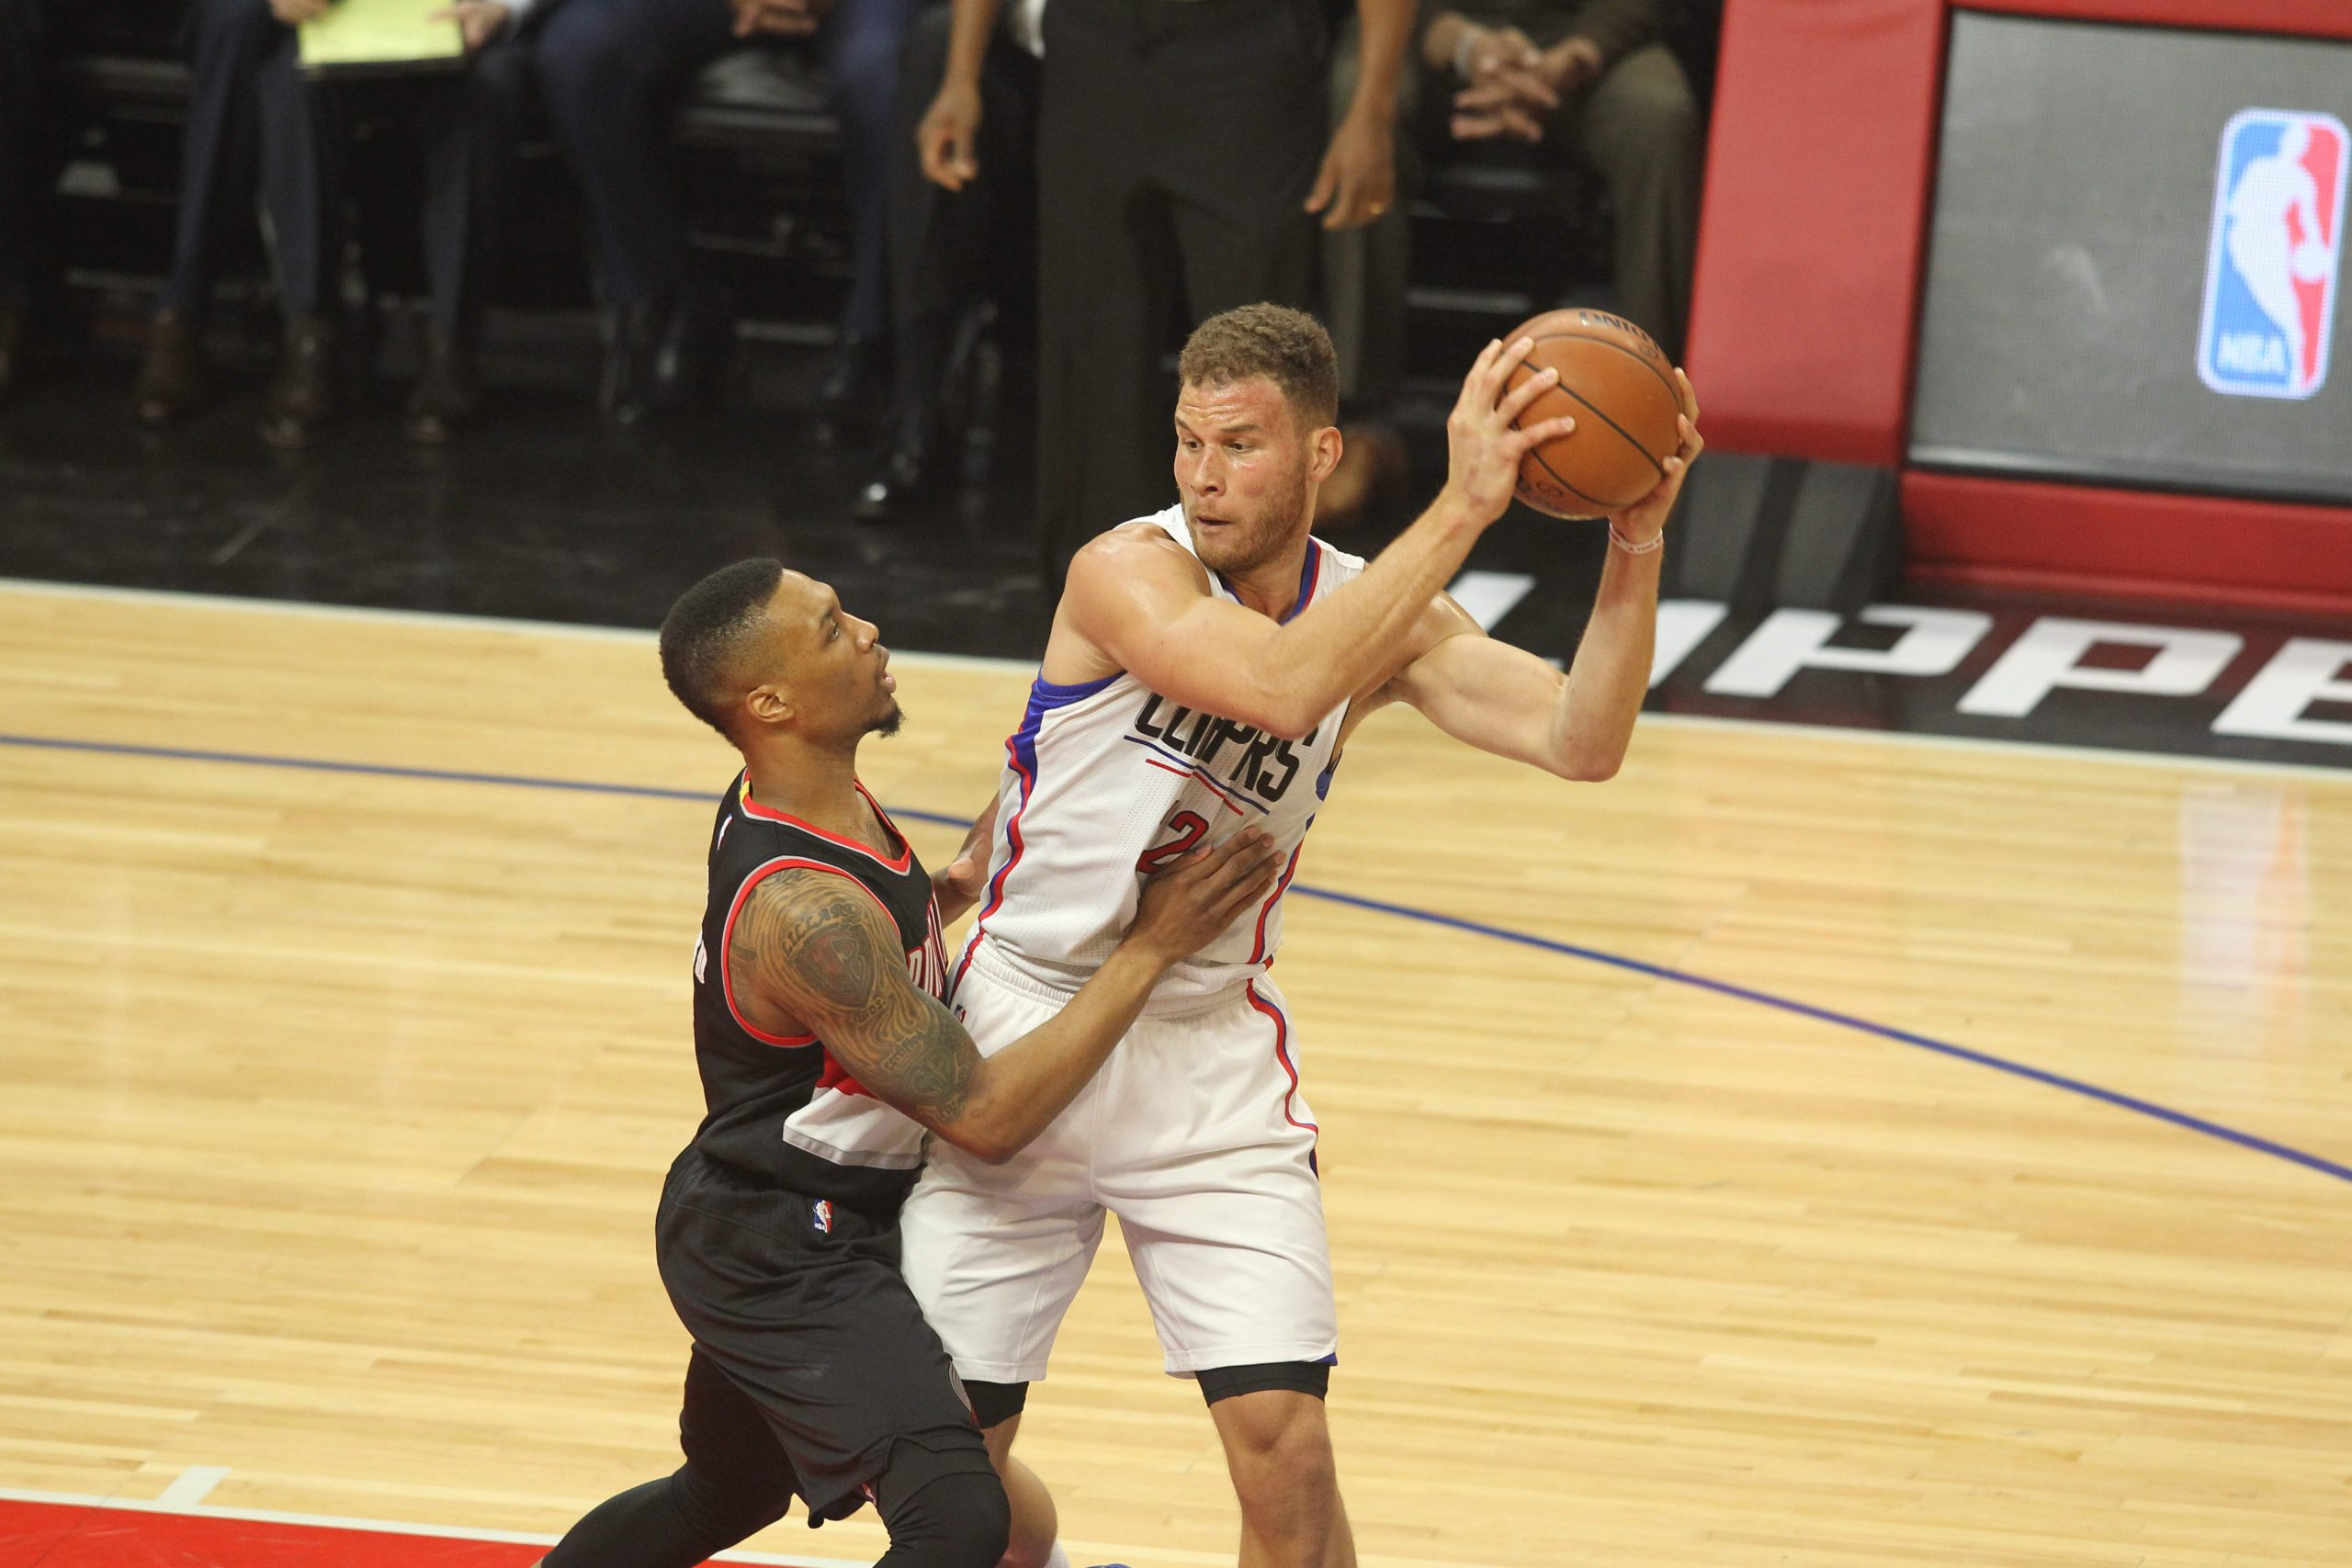 Griffin powers up against Trailblazers